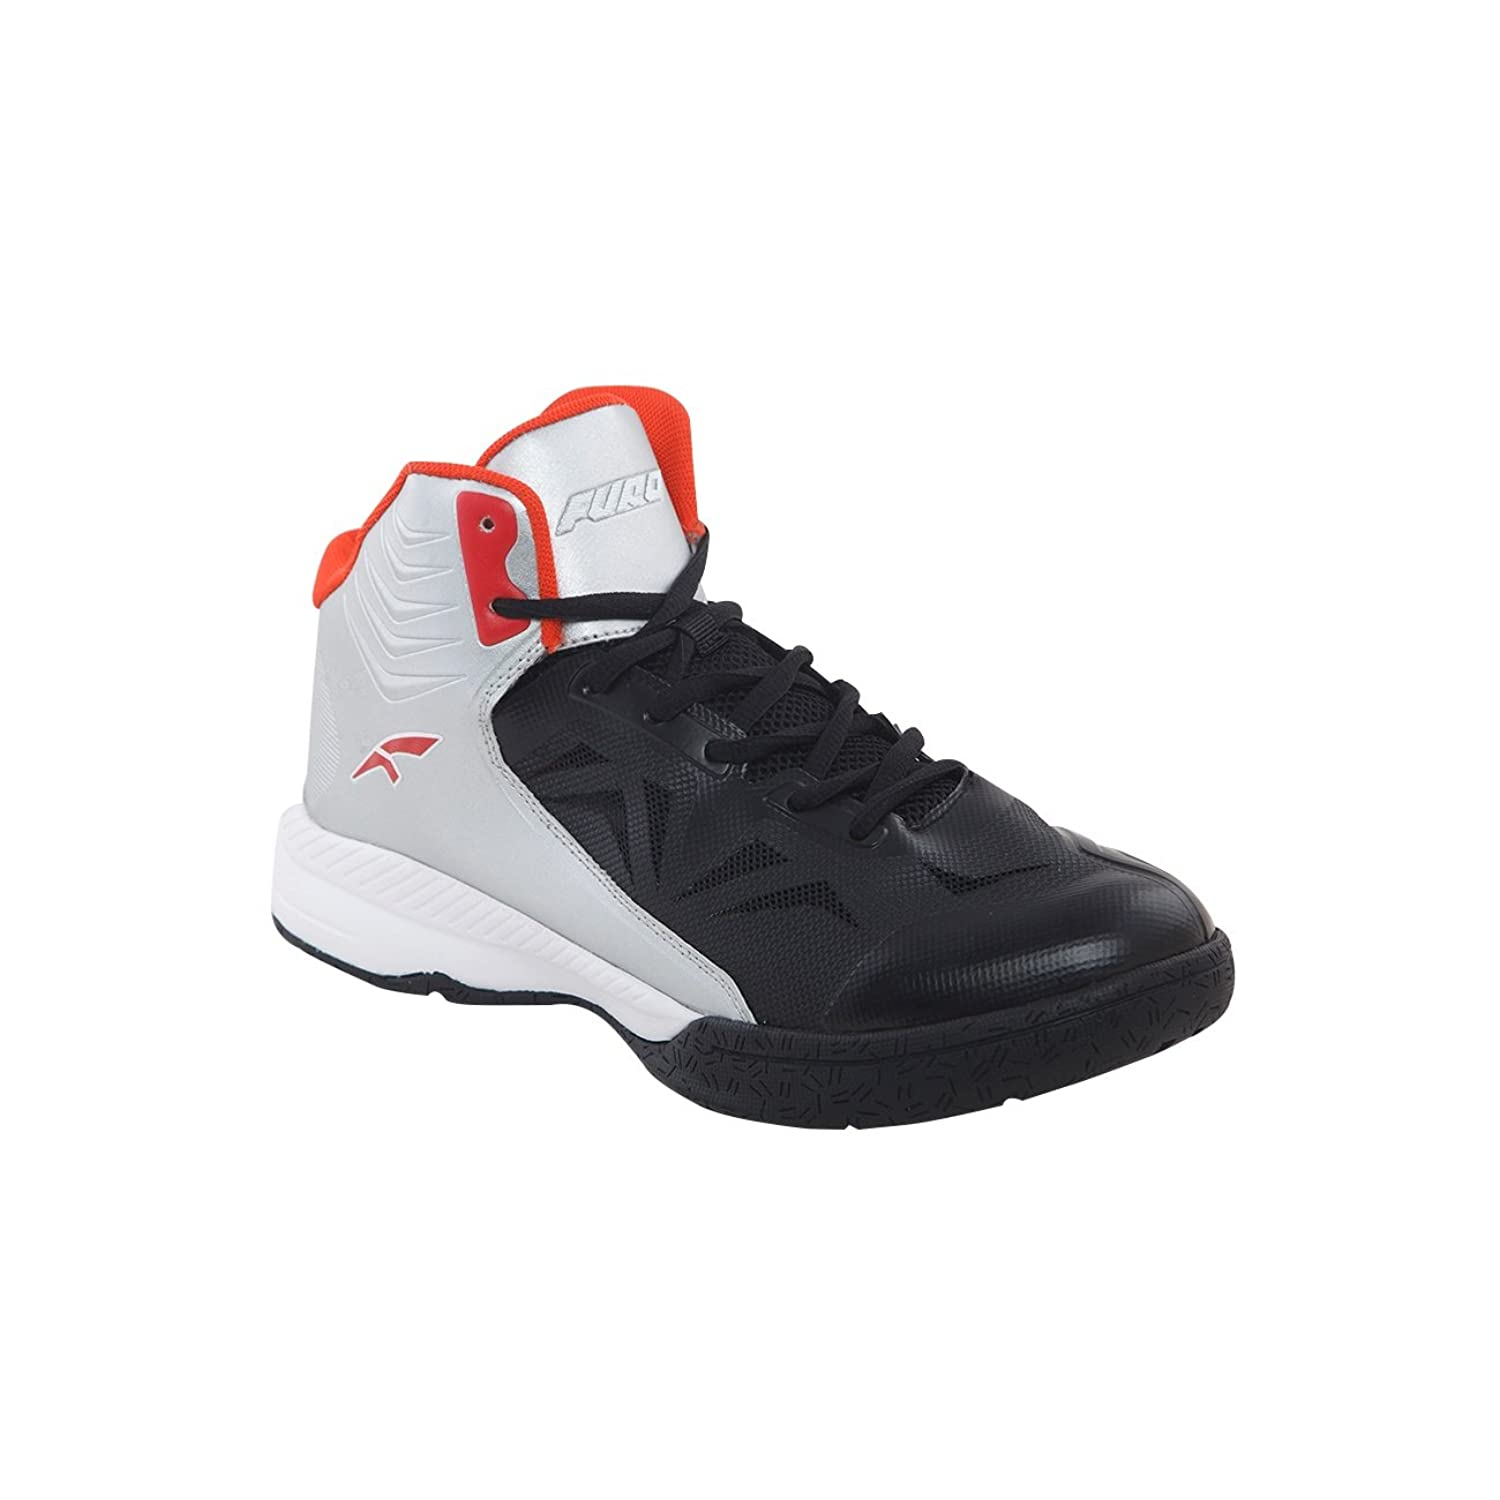 989f19ed87 Basketball Shoes  Buy Adidas Basketball Shoes online at best prices ...